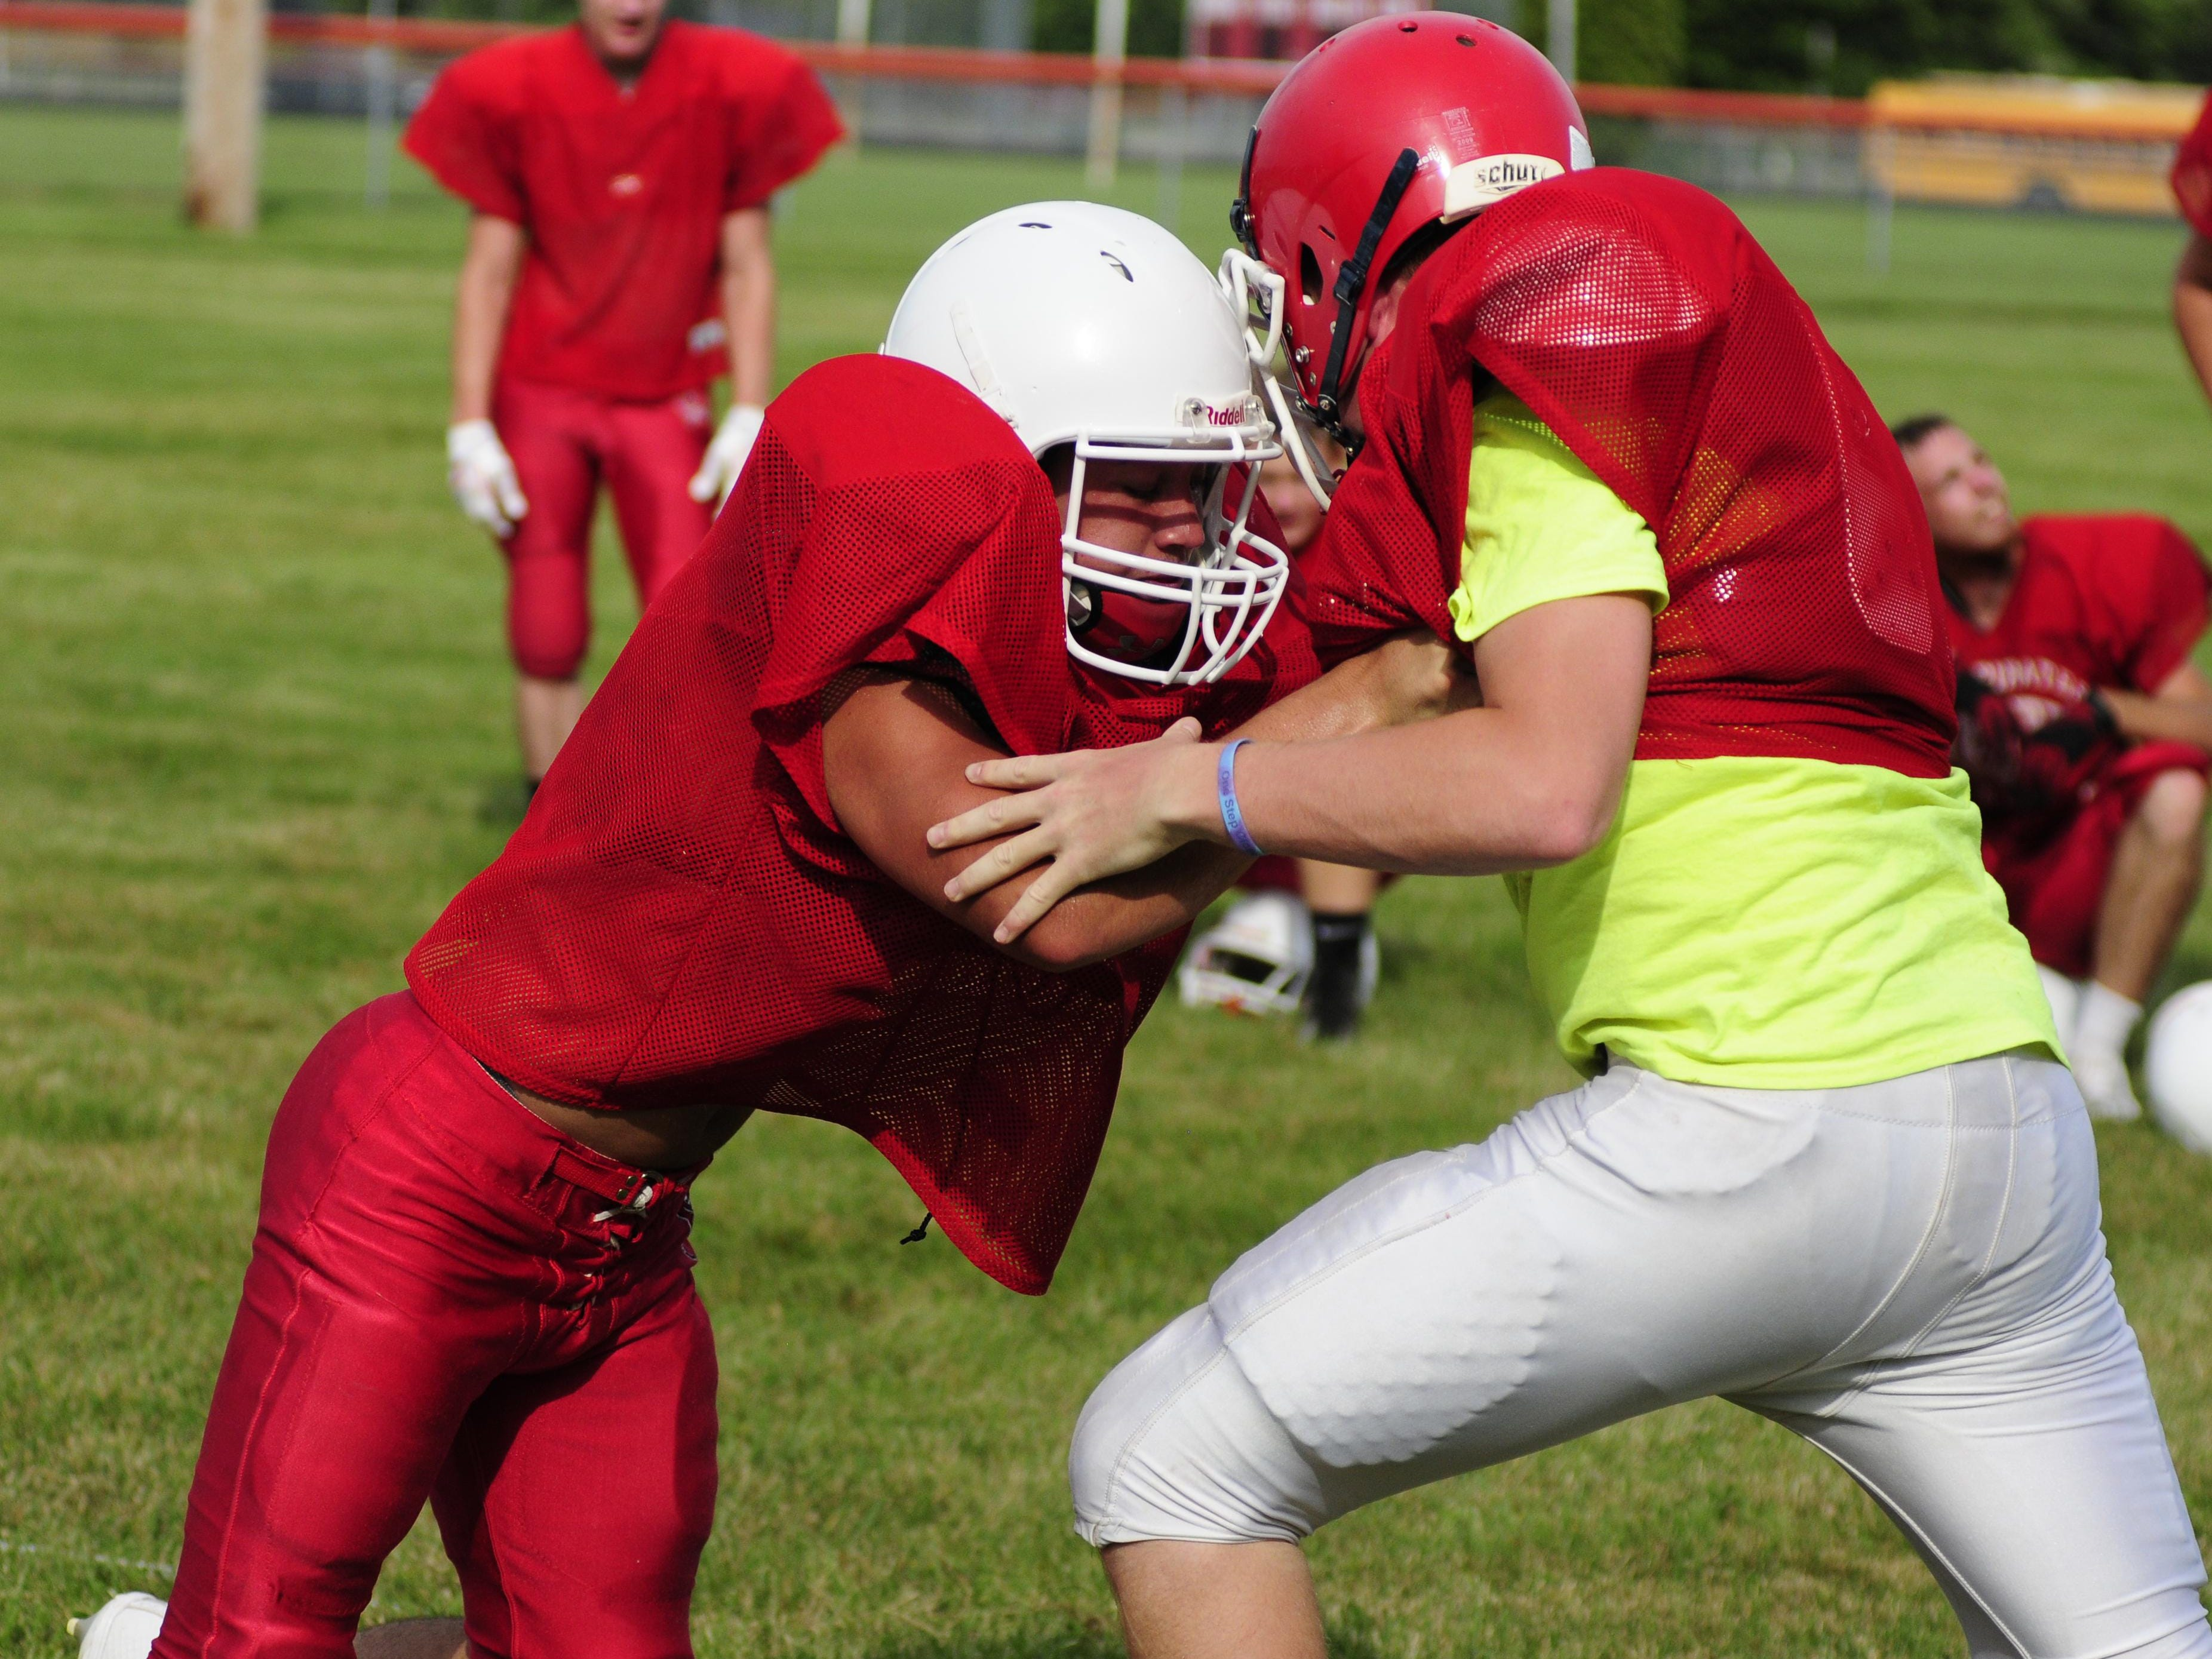 Nathan Rosenthal (left) competes in a drill at Peck football practice.